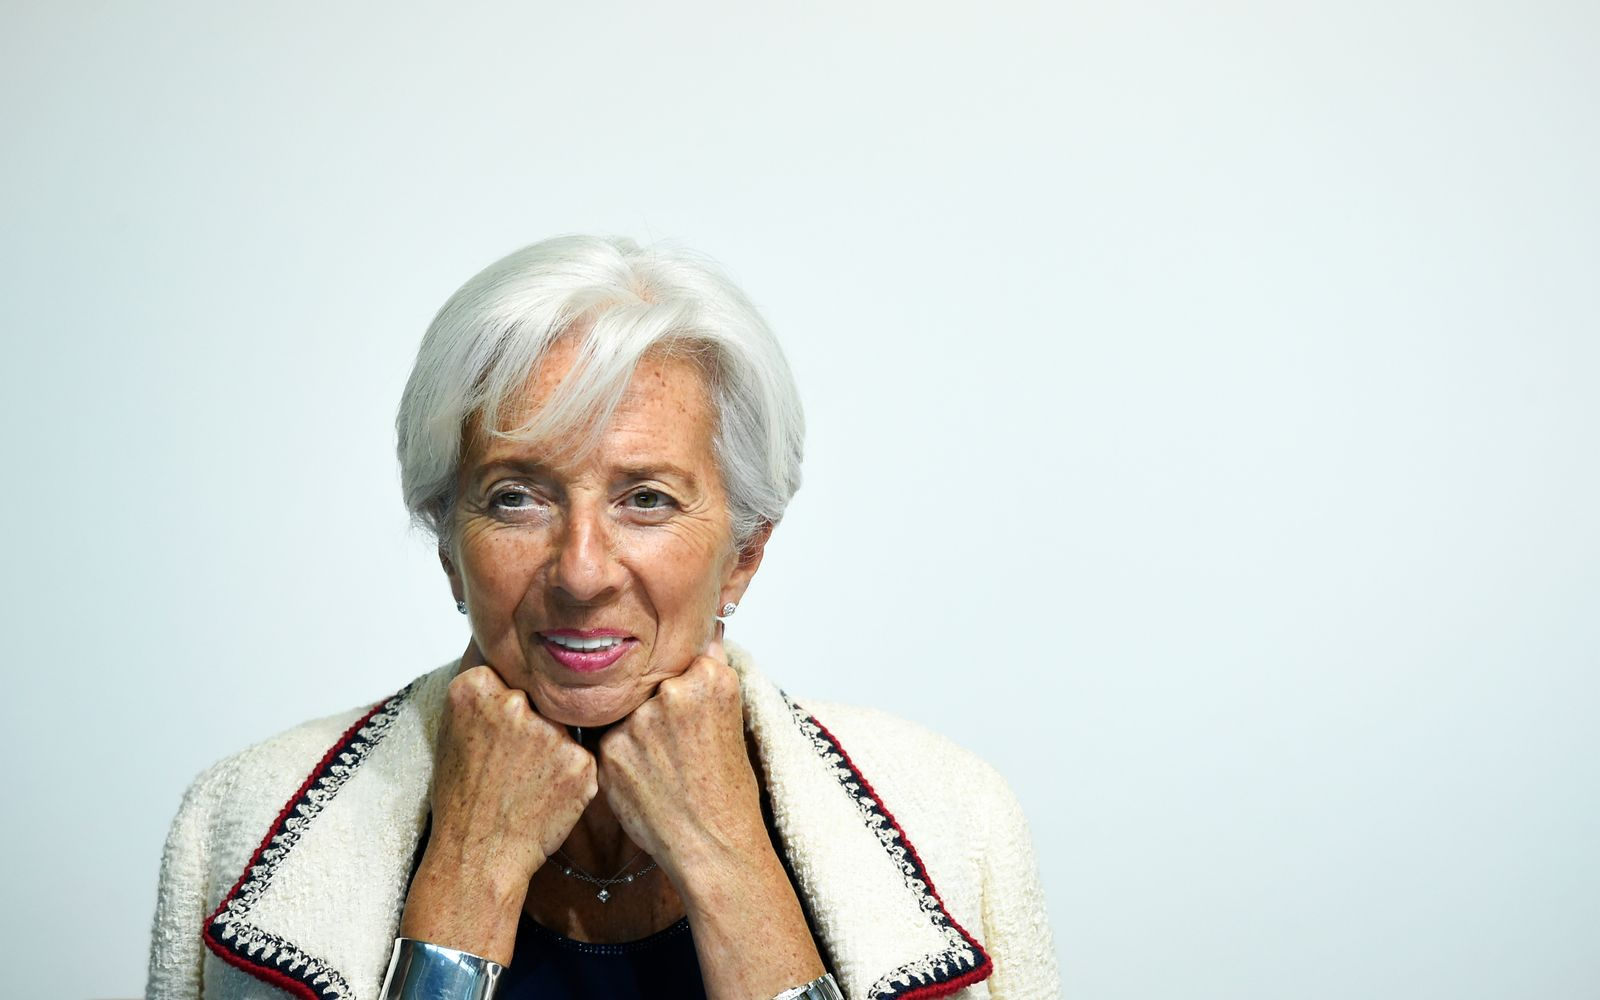 Christine Lagarde / EZB